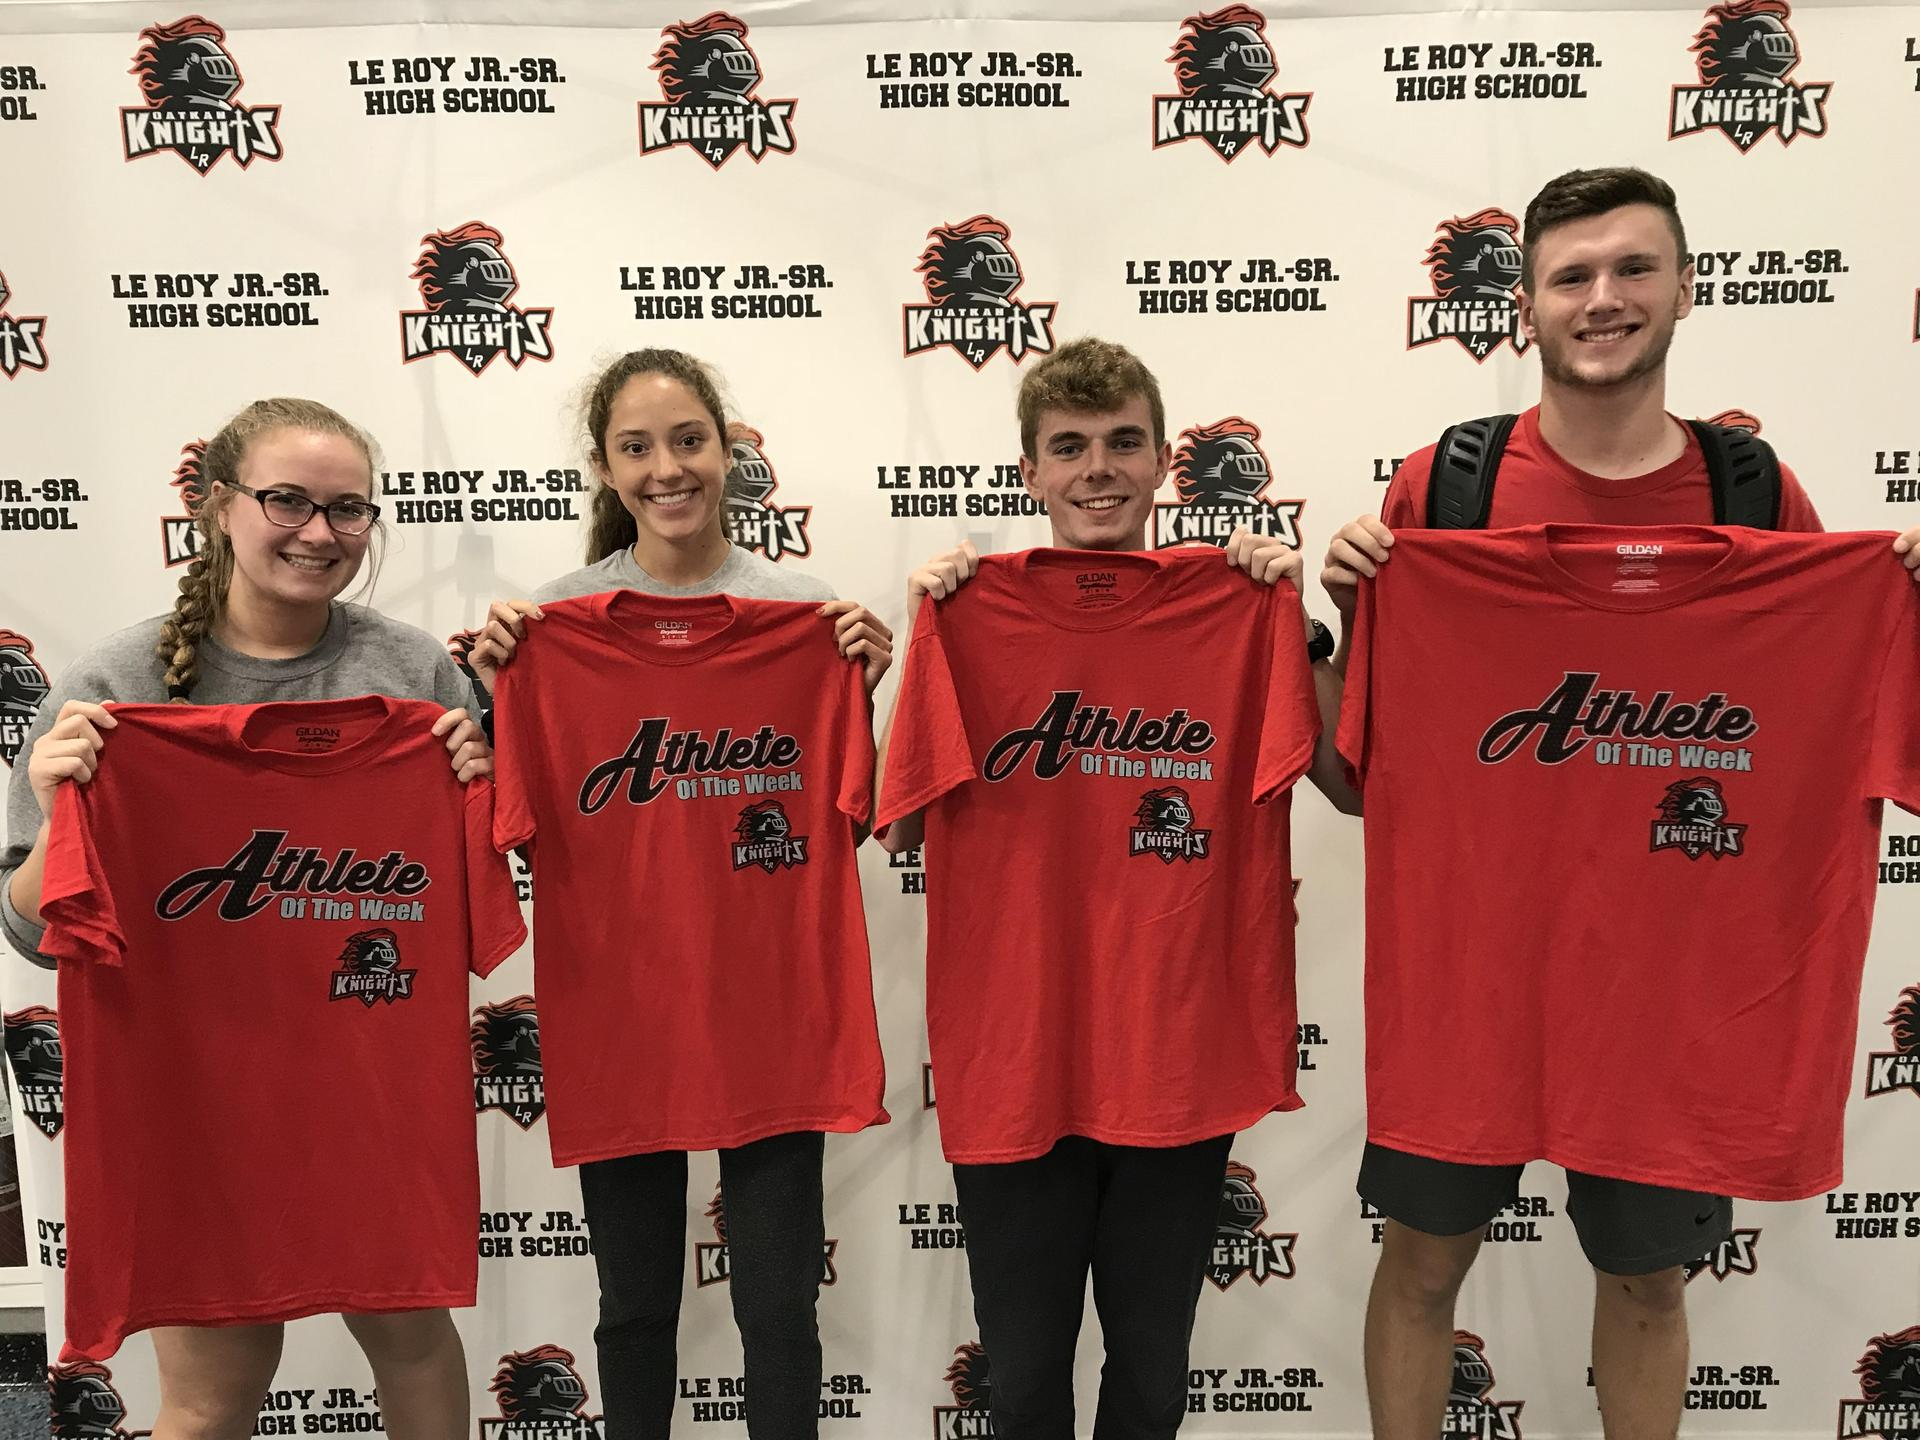 Athletes of the Week - O Johnson, C Kacur, E Pocock, R Tresco